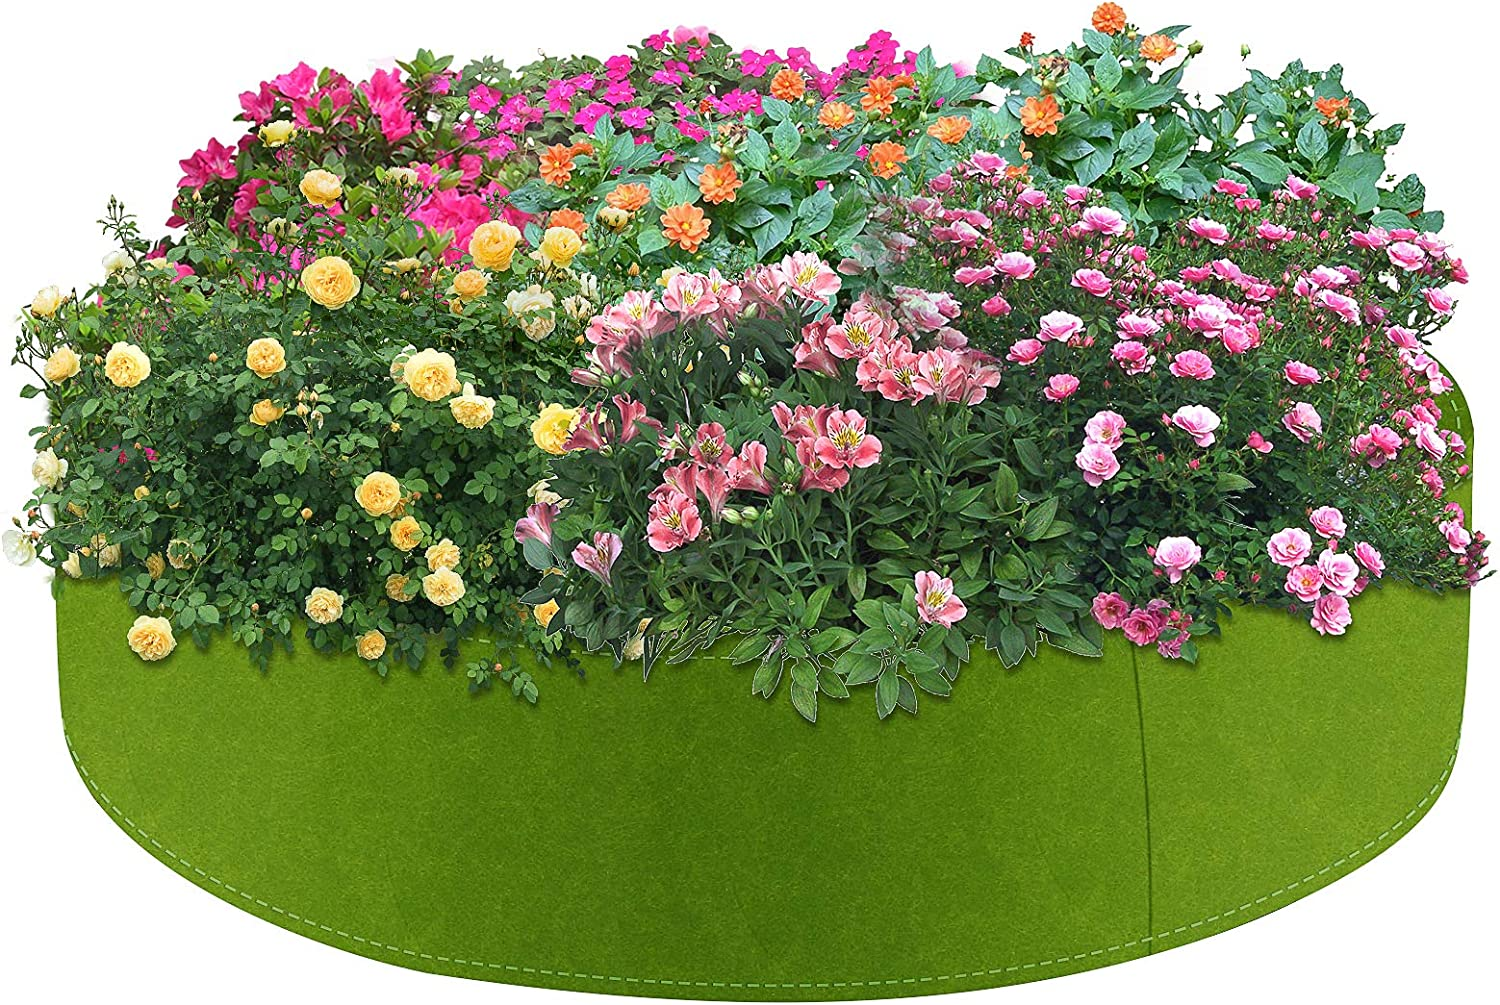 Round Raised Garden Bed, BicycleStore 100 Gallon Plant Grow Bag Heavy Duty Fabric Round Planter Pots Planting Container for Potatoes Tomatoes Strawberries Flowers Gardening, Indoors and Outdoors